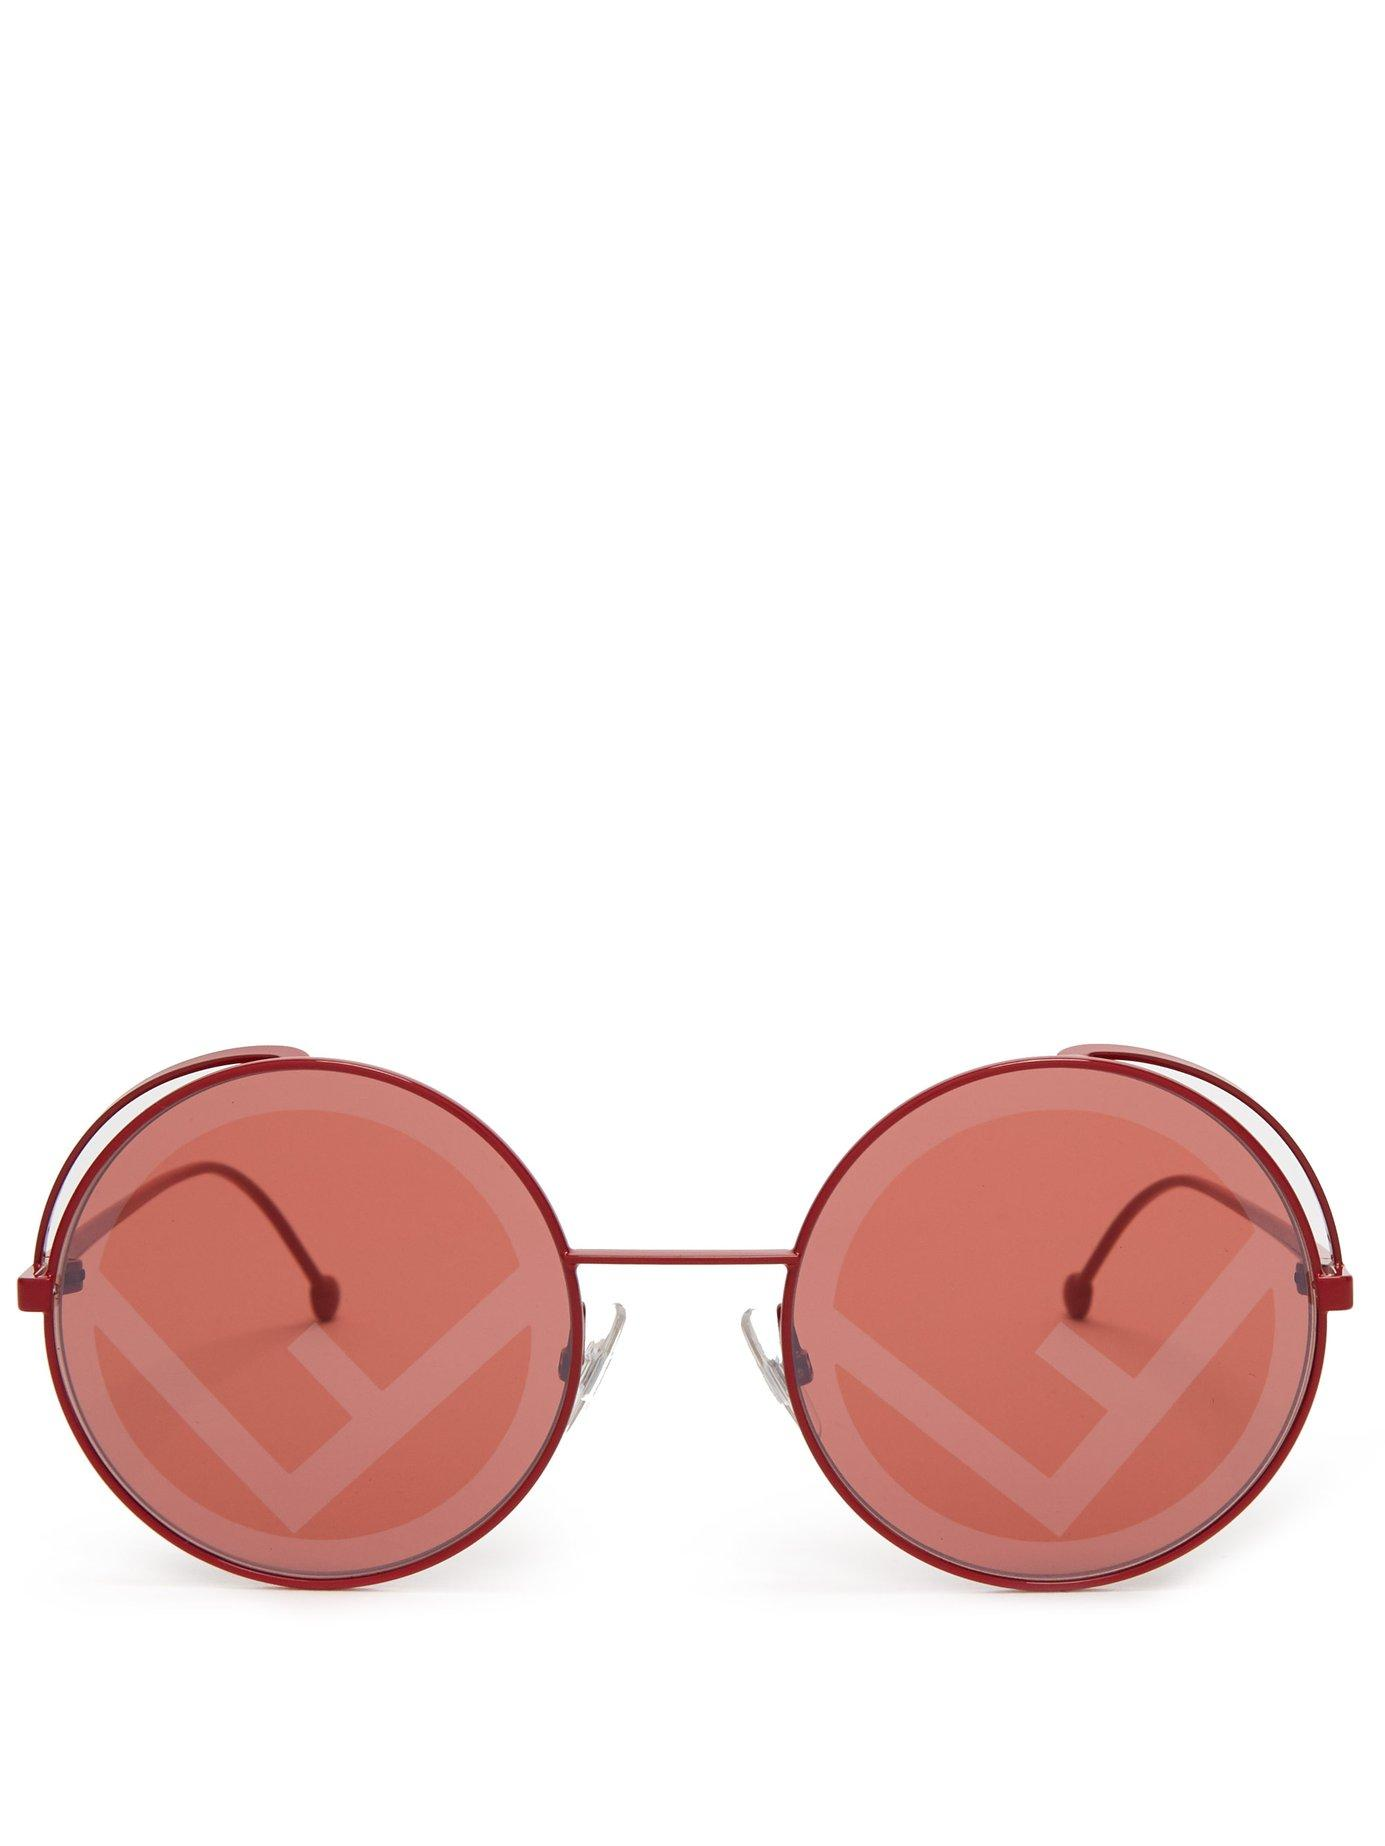 b15224edf110 Fendi Rama Rounded Frame Metal Sunglasses in Red - Lyst